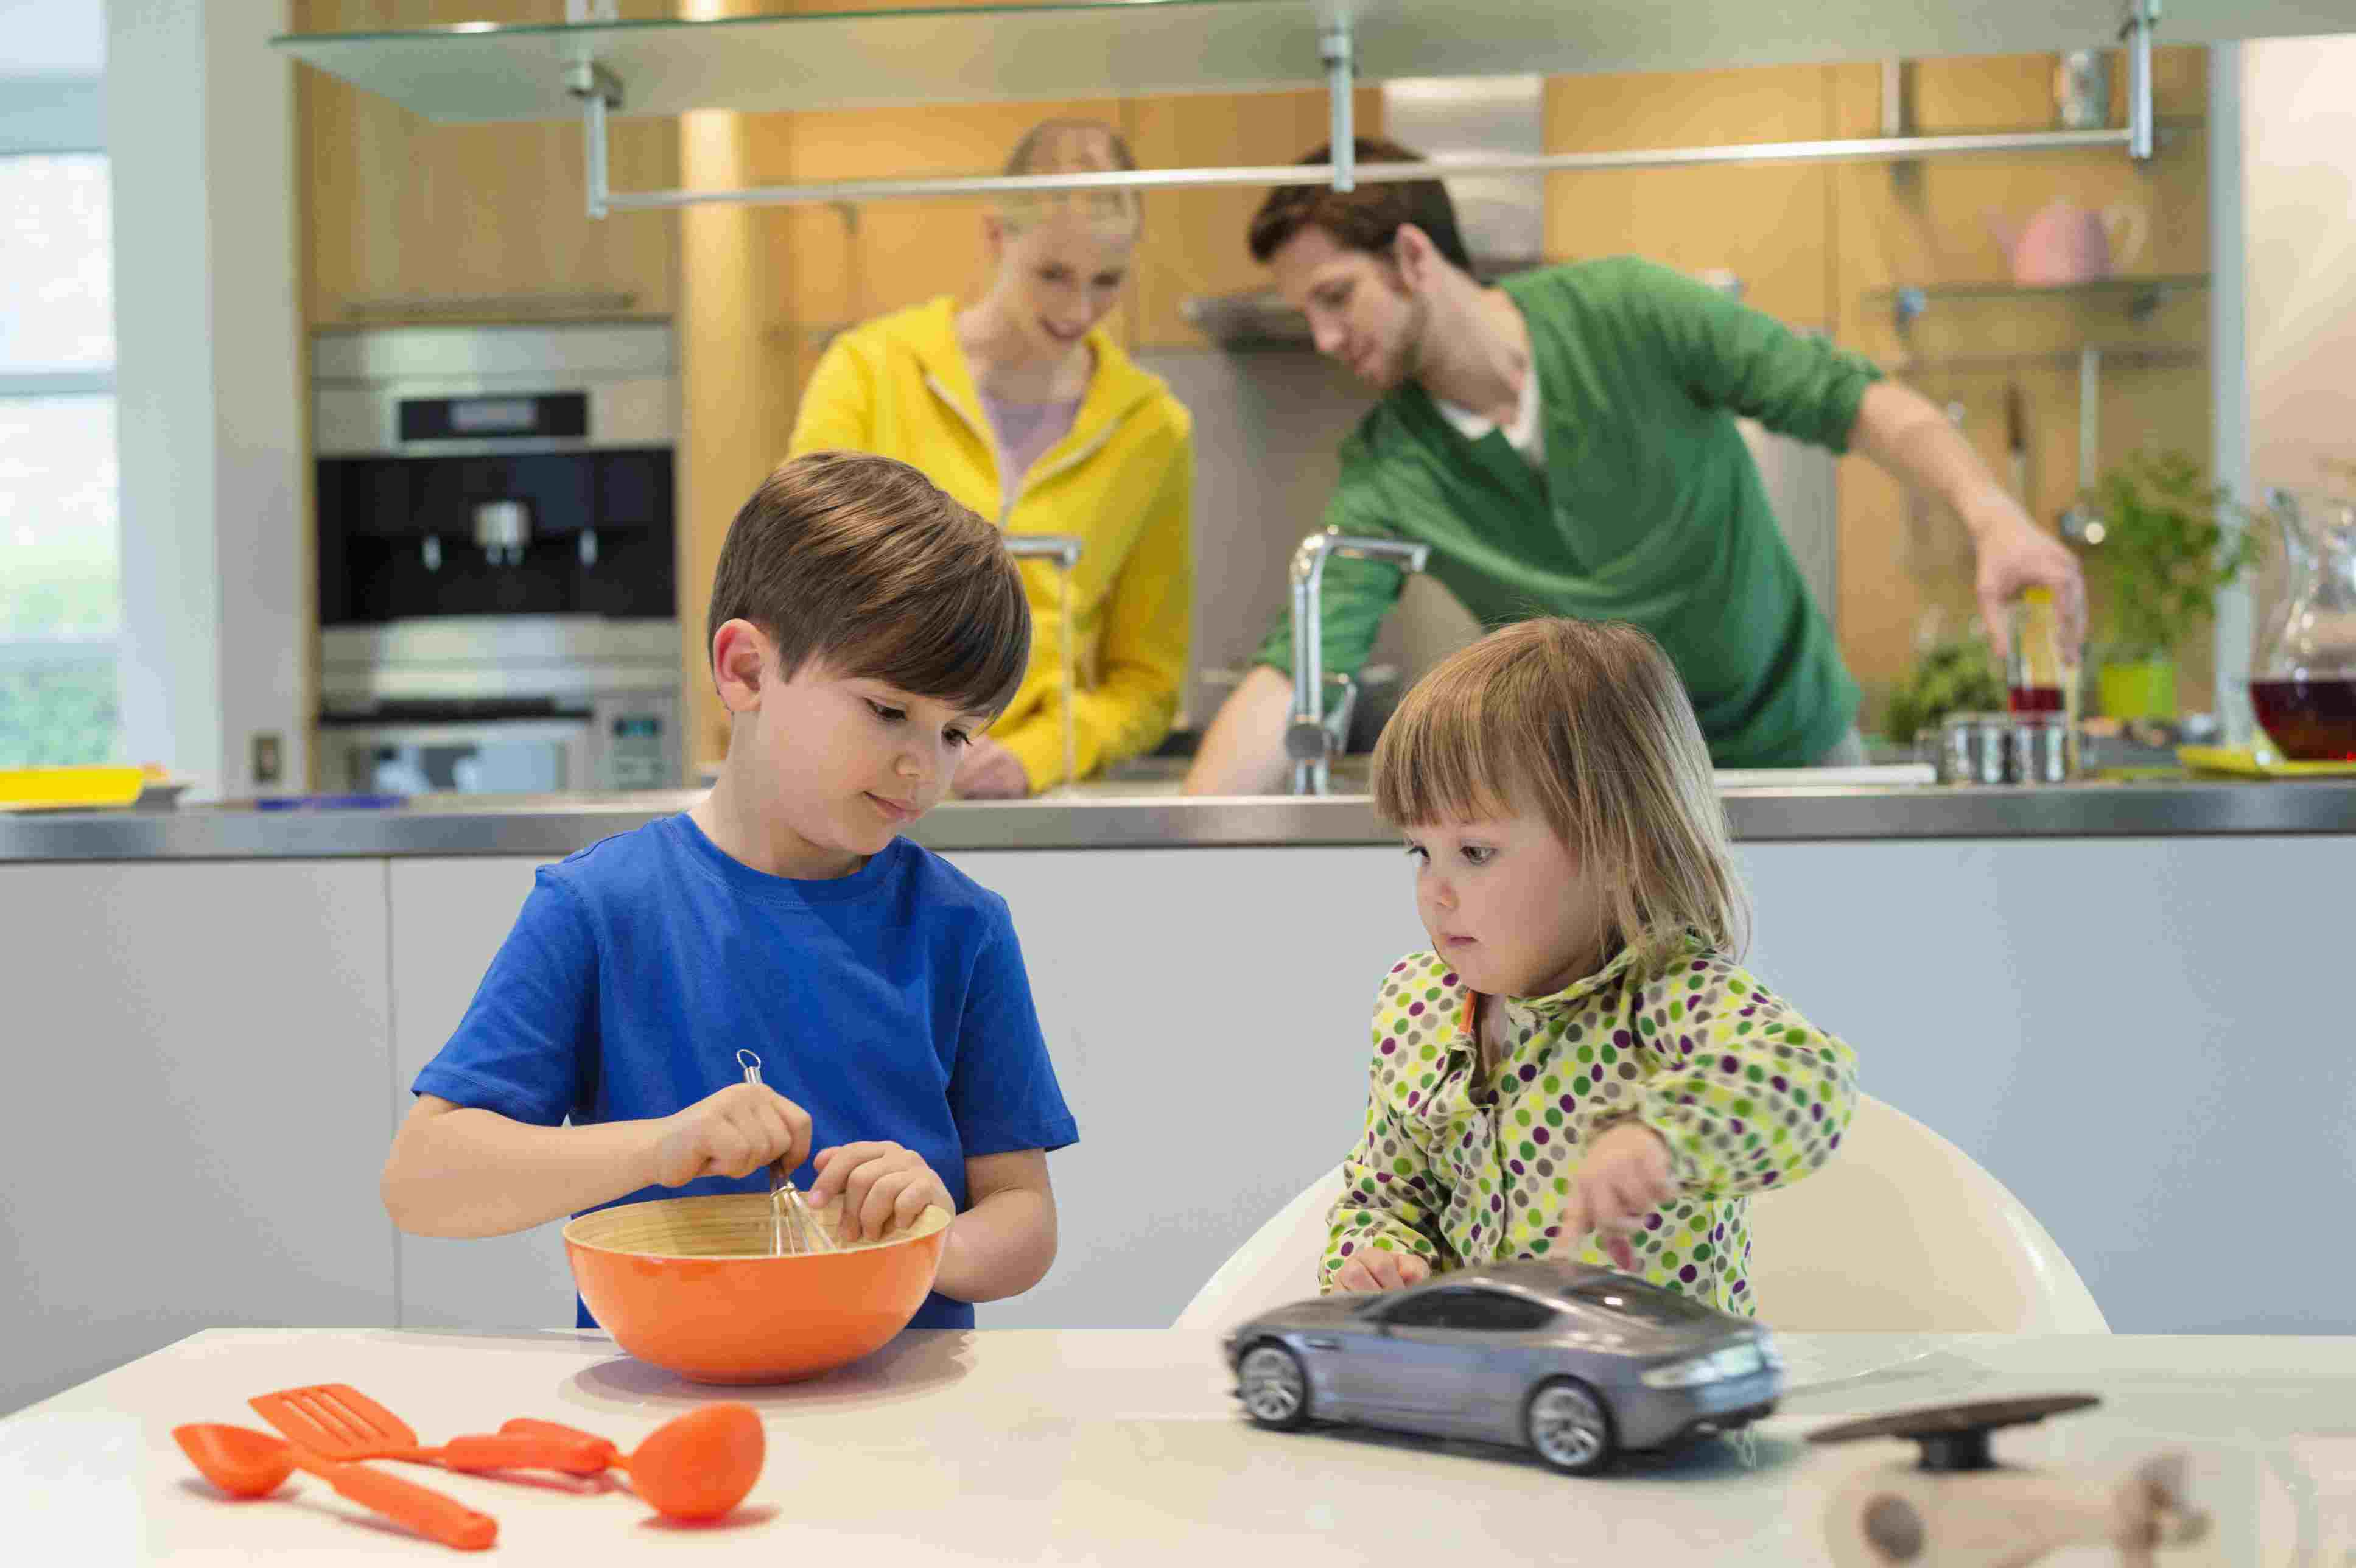 Mother, father, and two young children spending time together in the kitchen.